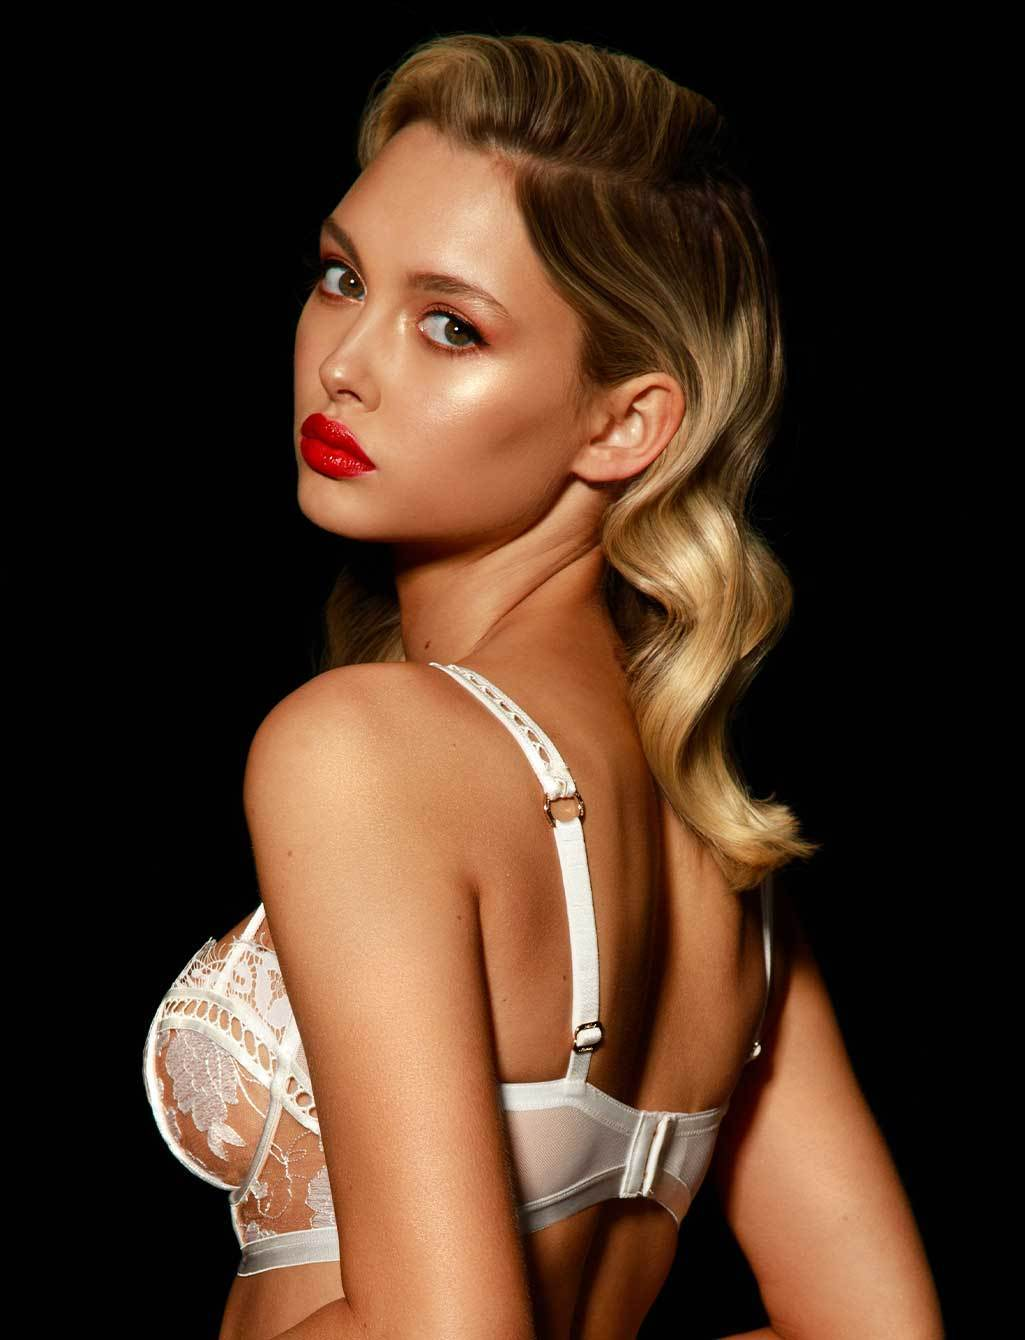 Molly Lace White Ivory Bridal Underwire Bra | Shop  Lingerie Honey Birdette